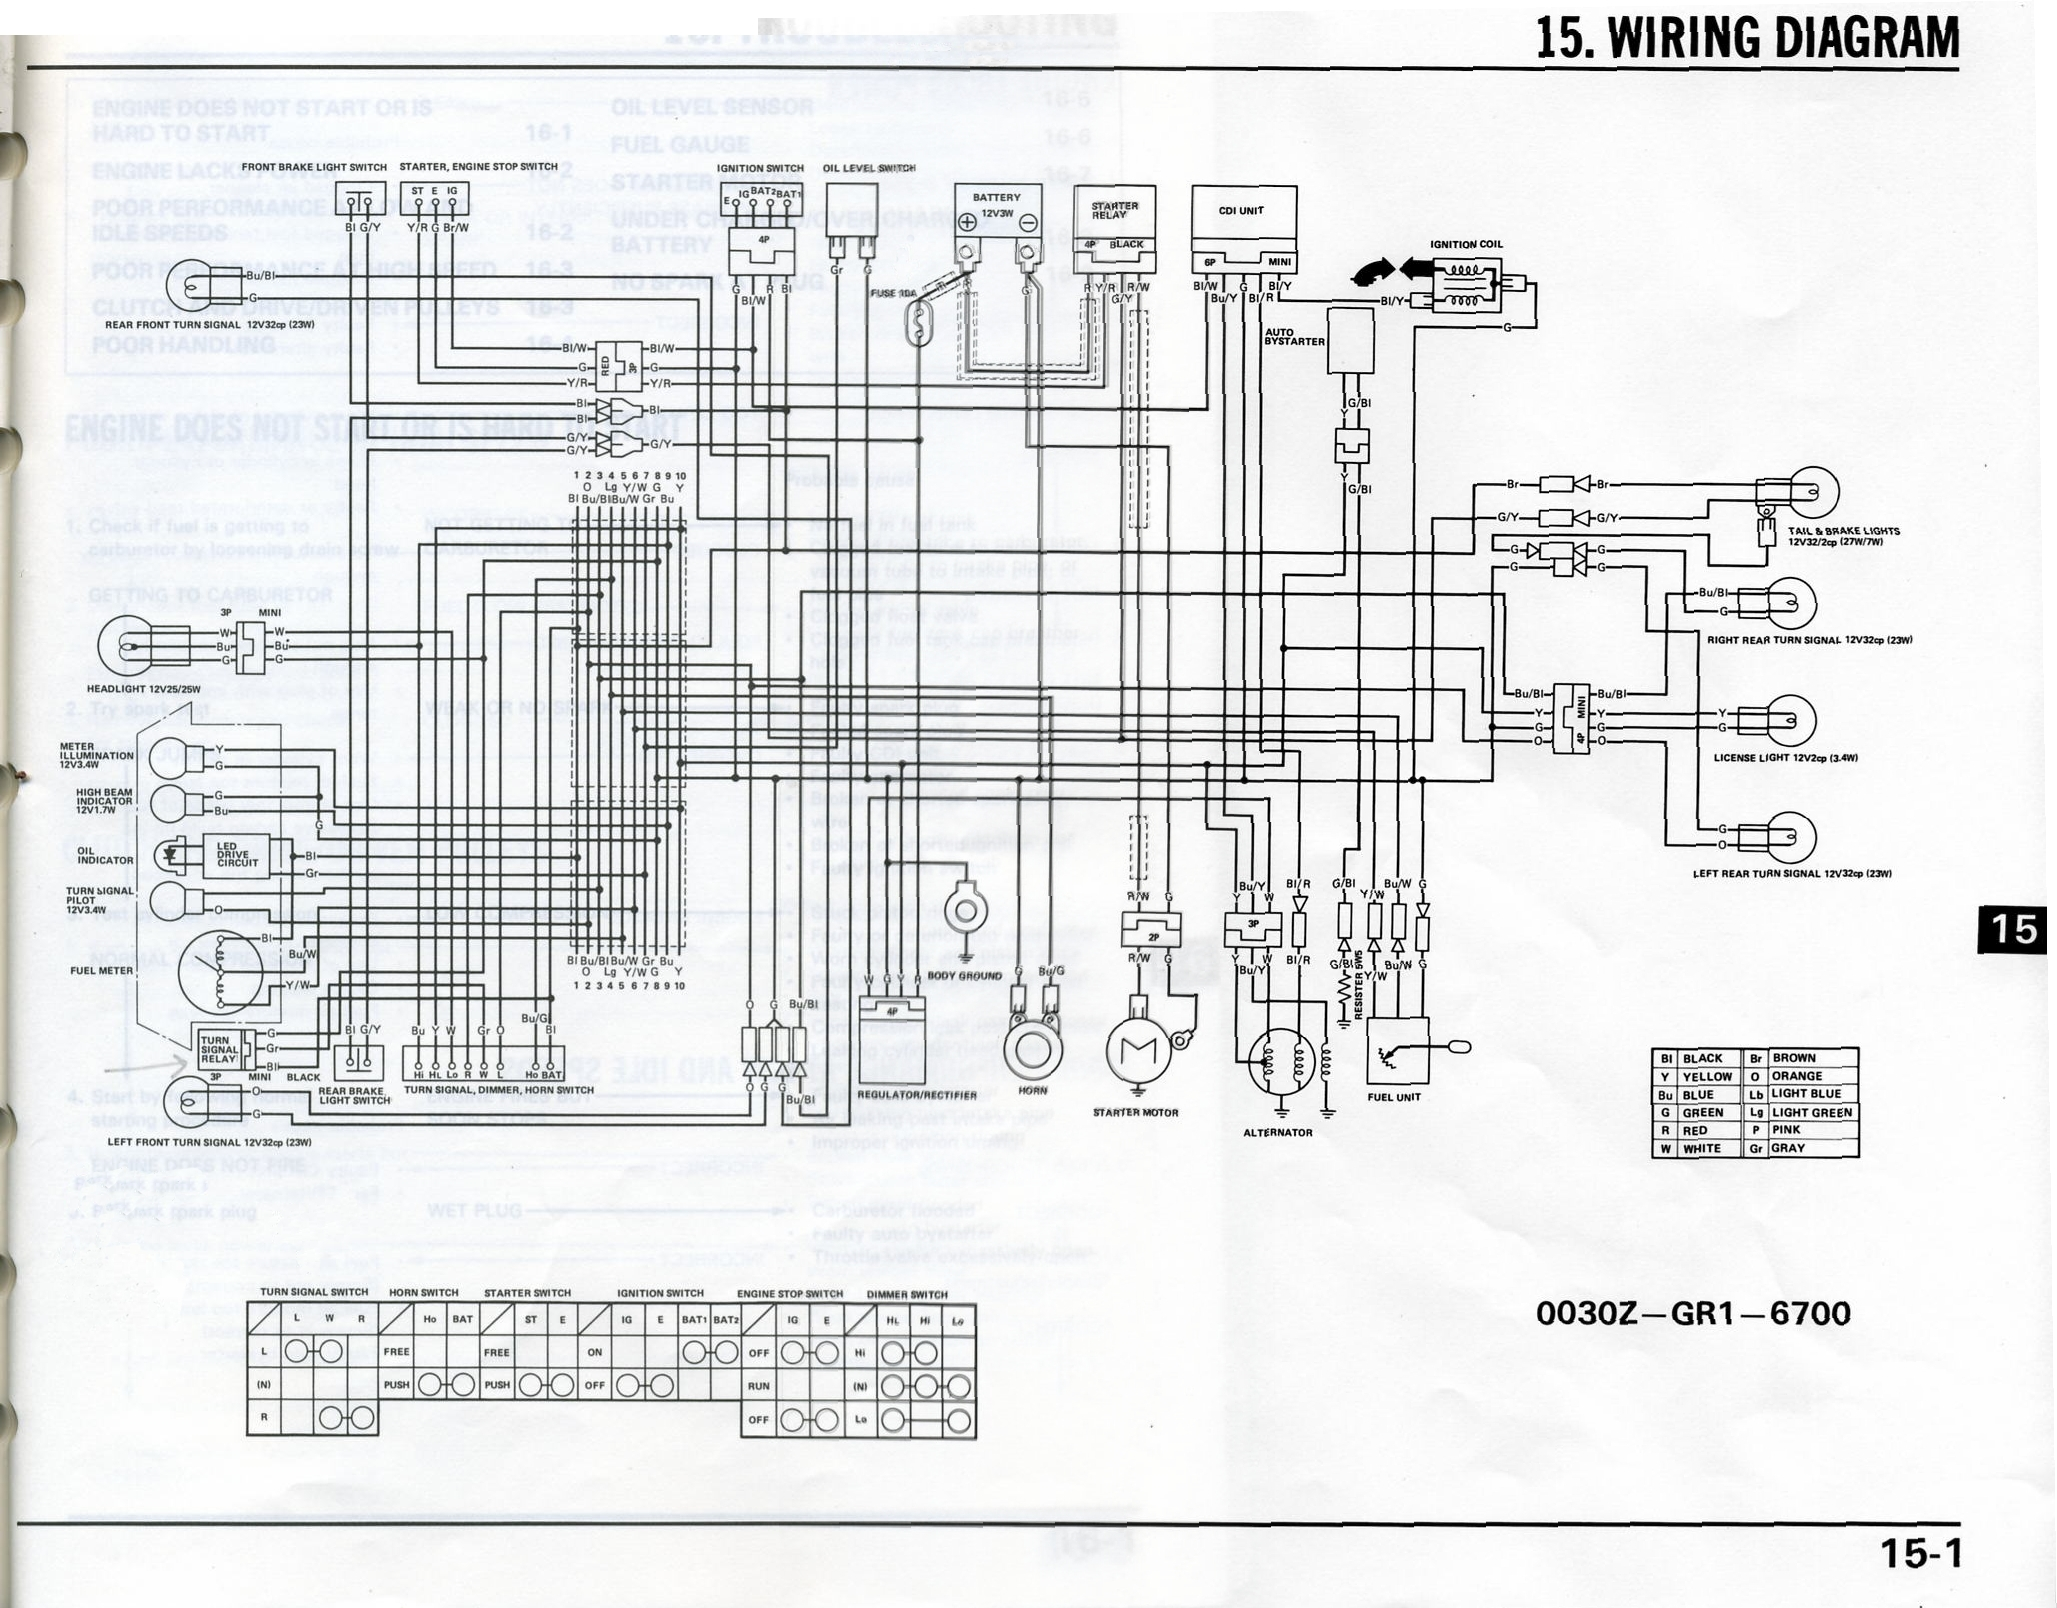 RC_9760] Honda 50 Wiring Diagram As Well Moped 50Cc Scooter Wiring Diagram  In Wiring Diagram | Aero Scooter 80 Cc Wire Diagram |  | Dupl Phot Embo Unec Lectr Phae Mohammedshrine Librar Wiring 101